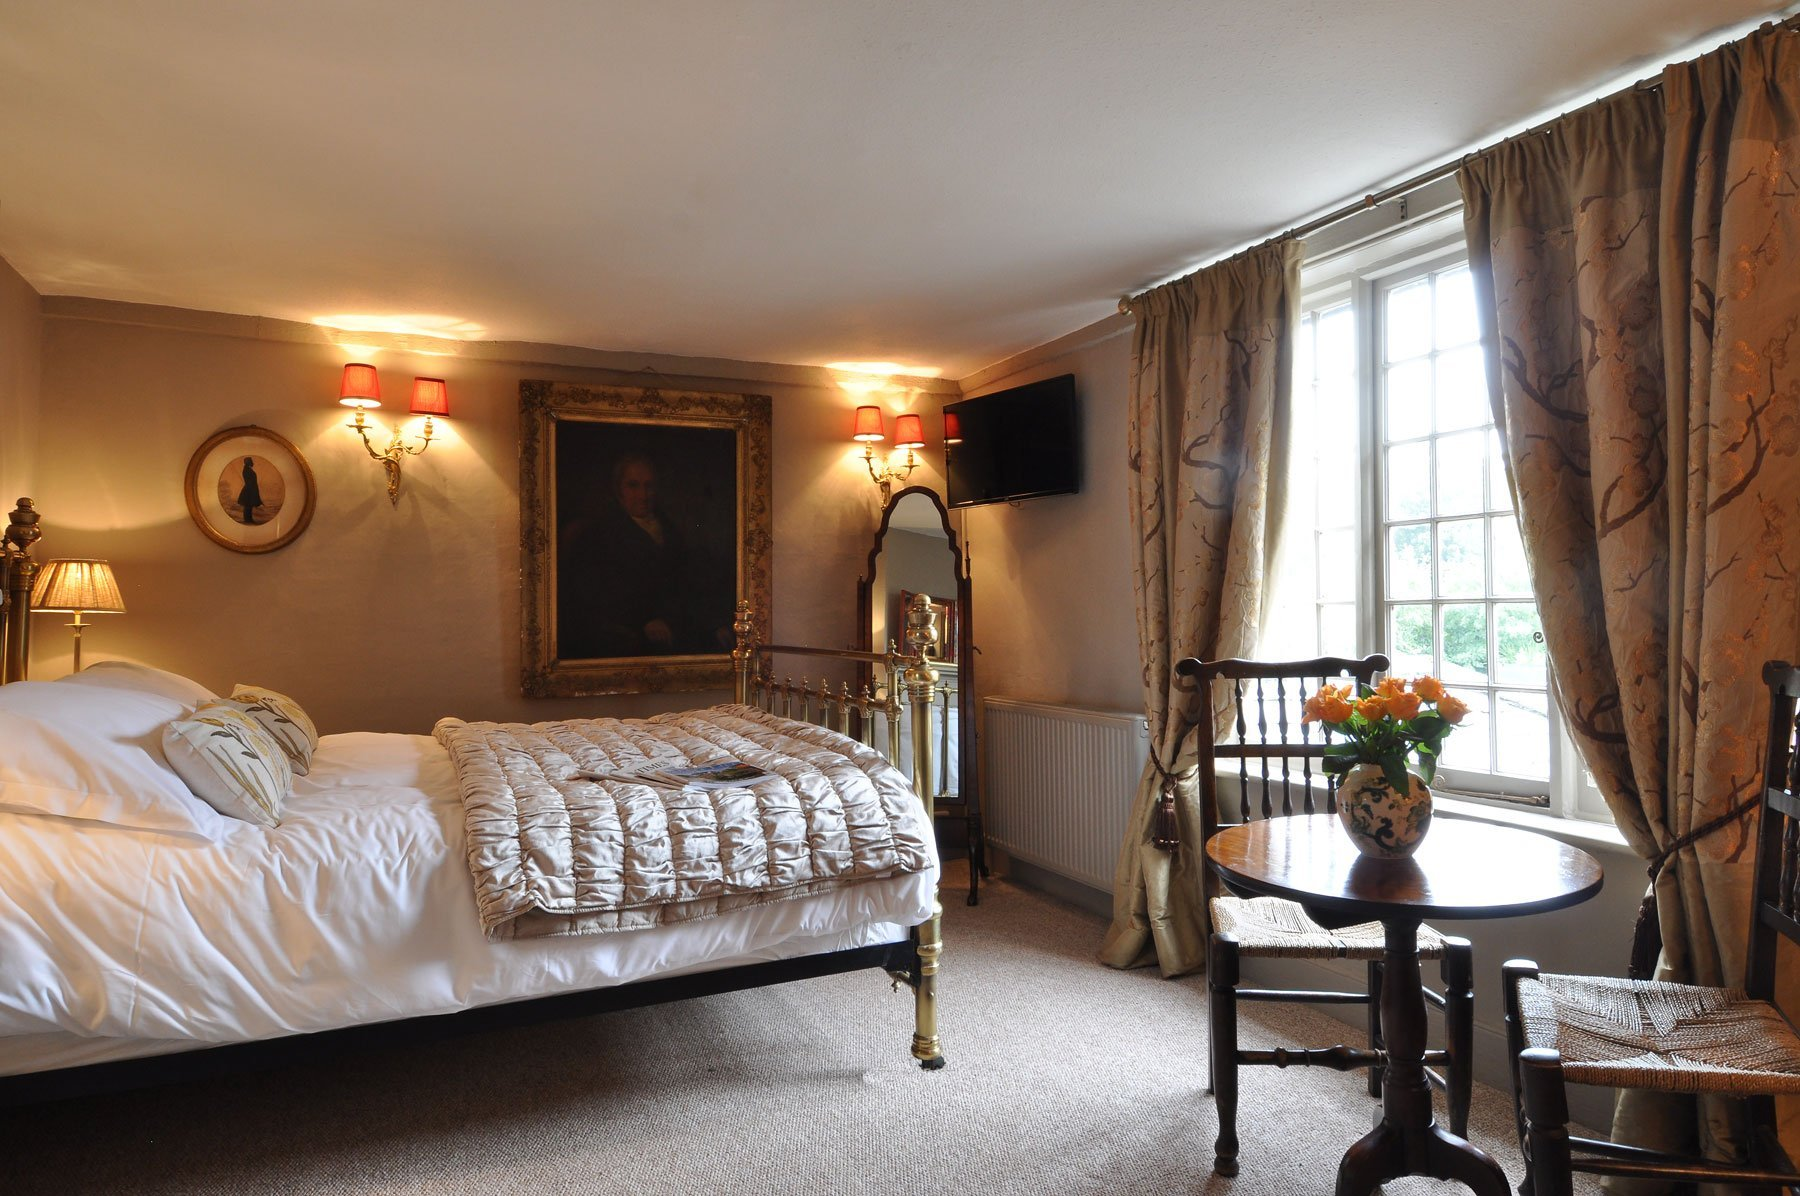 The Bull at Benenden - Bed and Breakfast